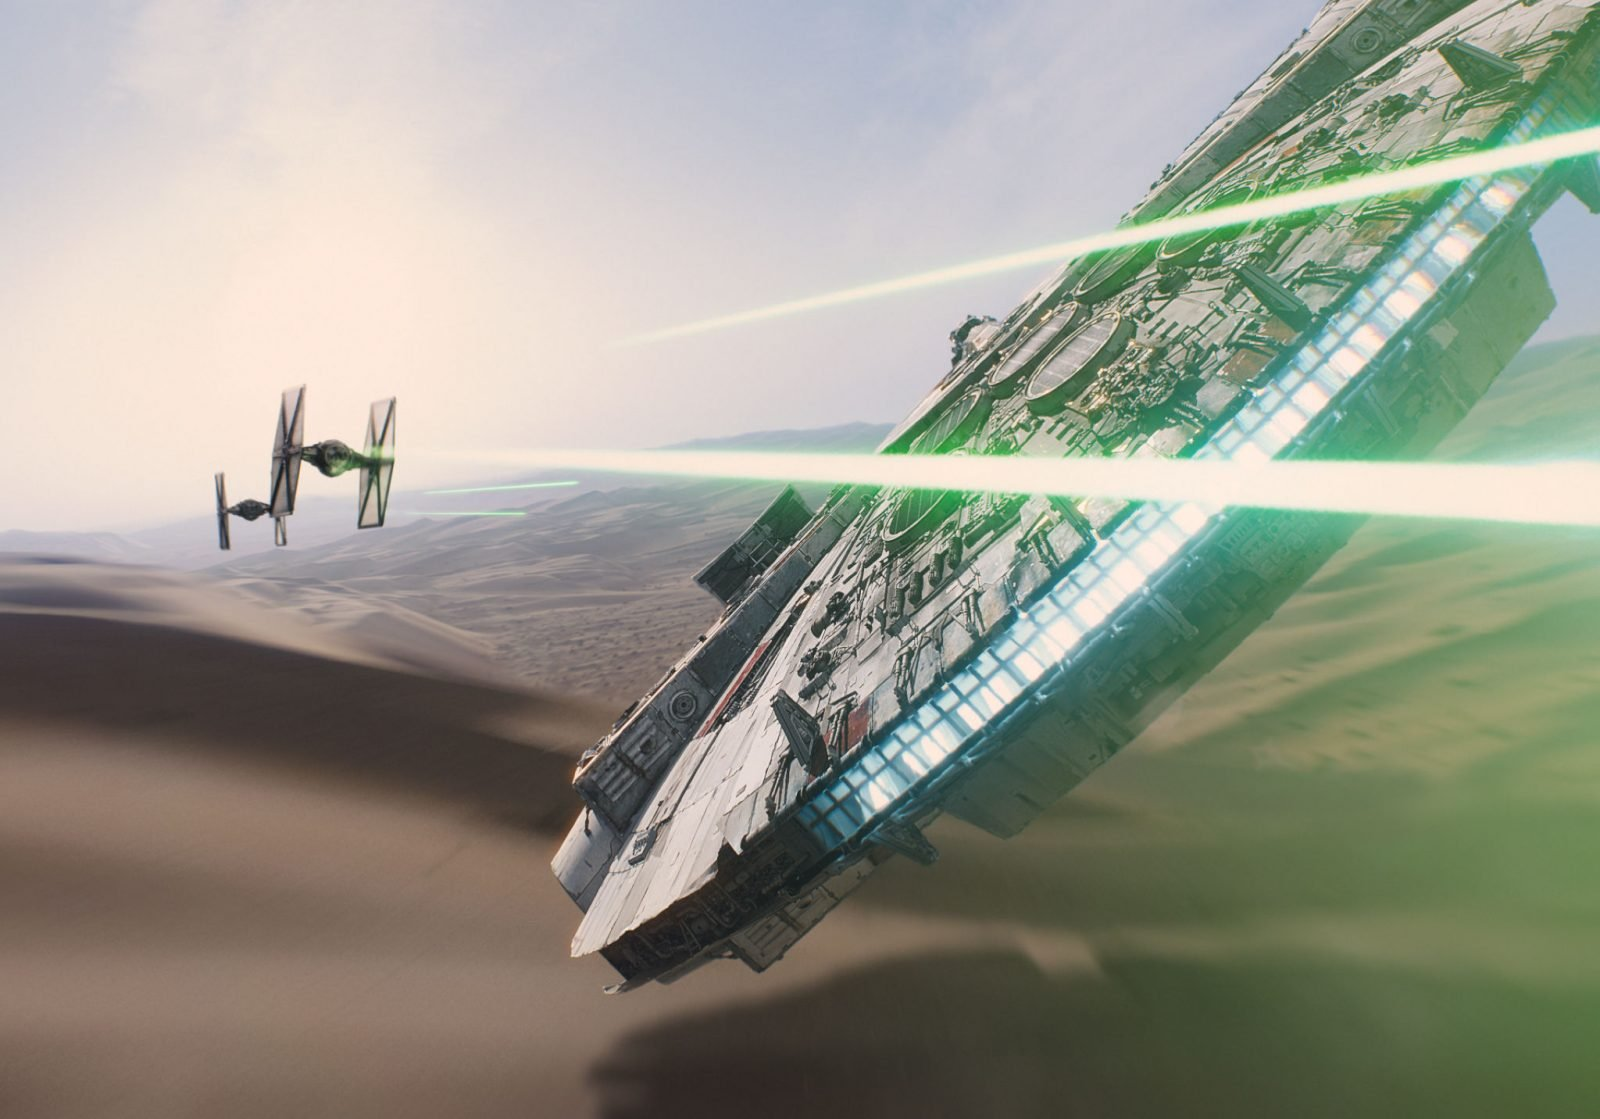 Star Wars VII The Force Awakens 42 - The Millennium Falcon battle with TIE fighters